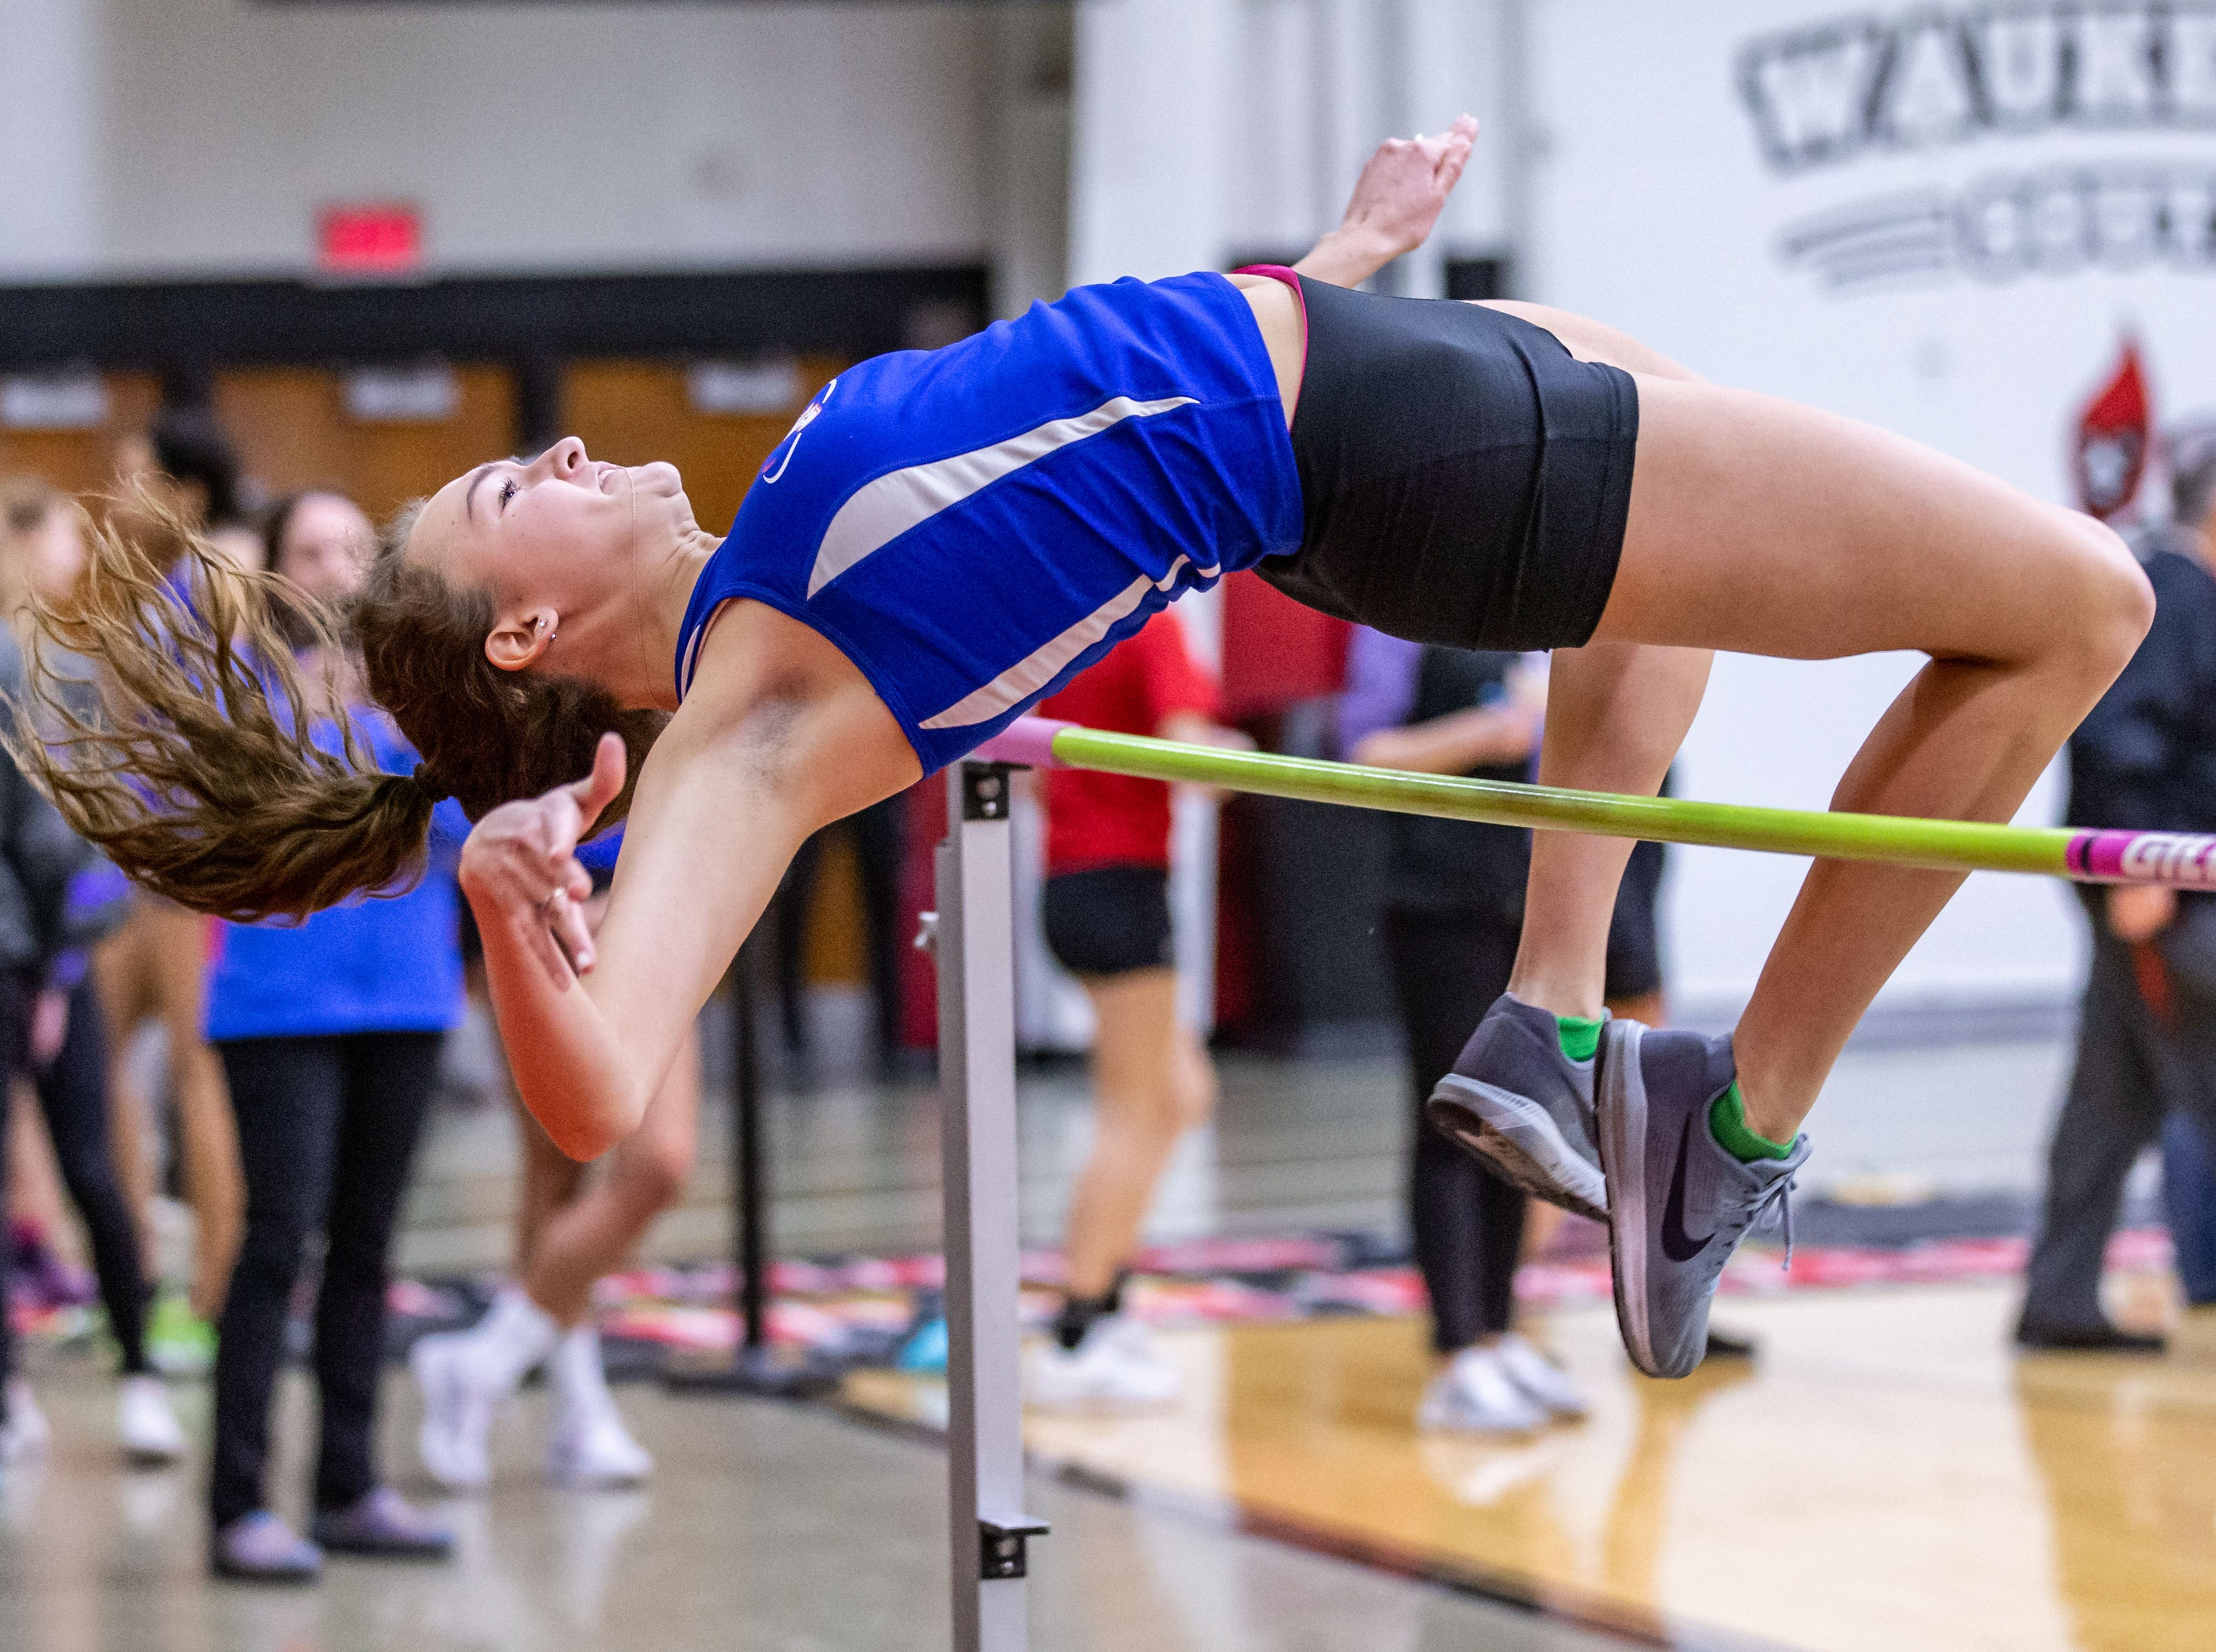 Wisconsin Lutheran's Ashley Carlson competes in the high jump at the Peter Rempe Cardinal Relays hosted by Waukesha South on Thursday, March 21, 2019.